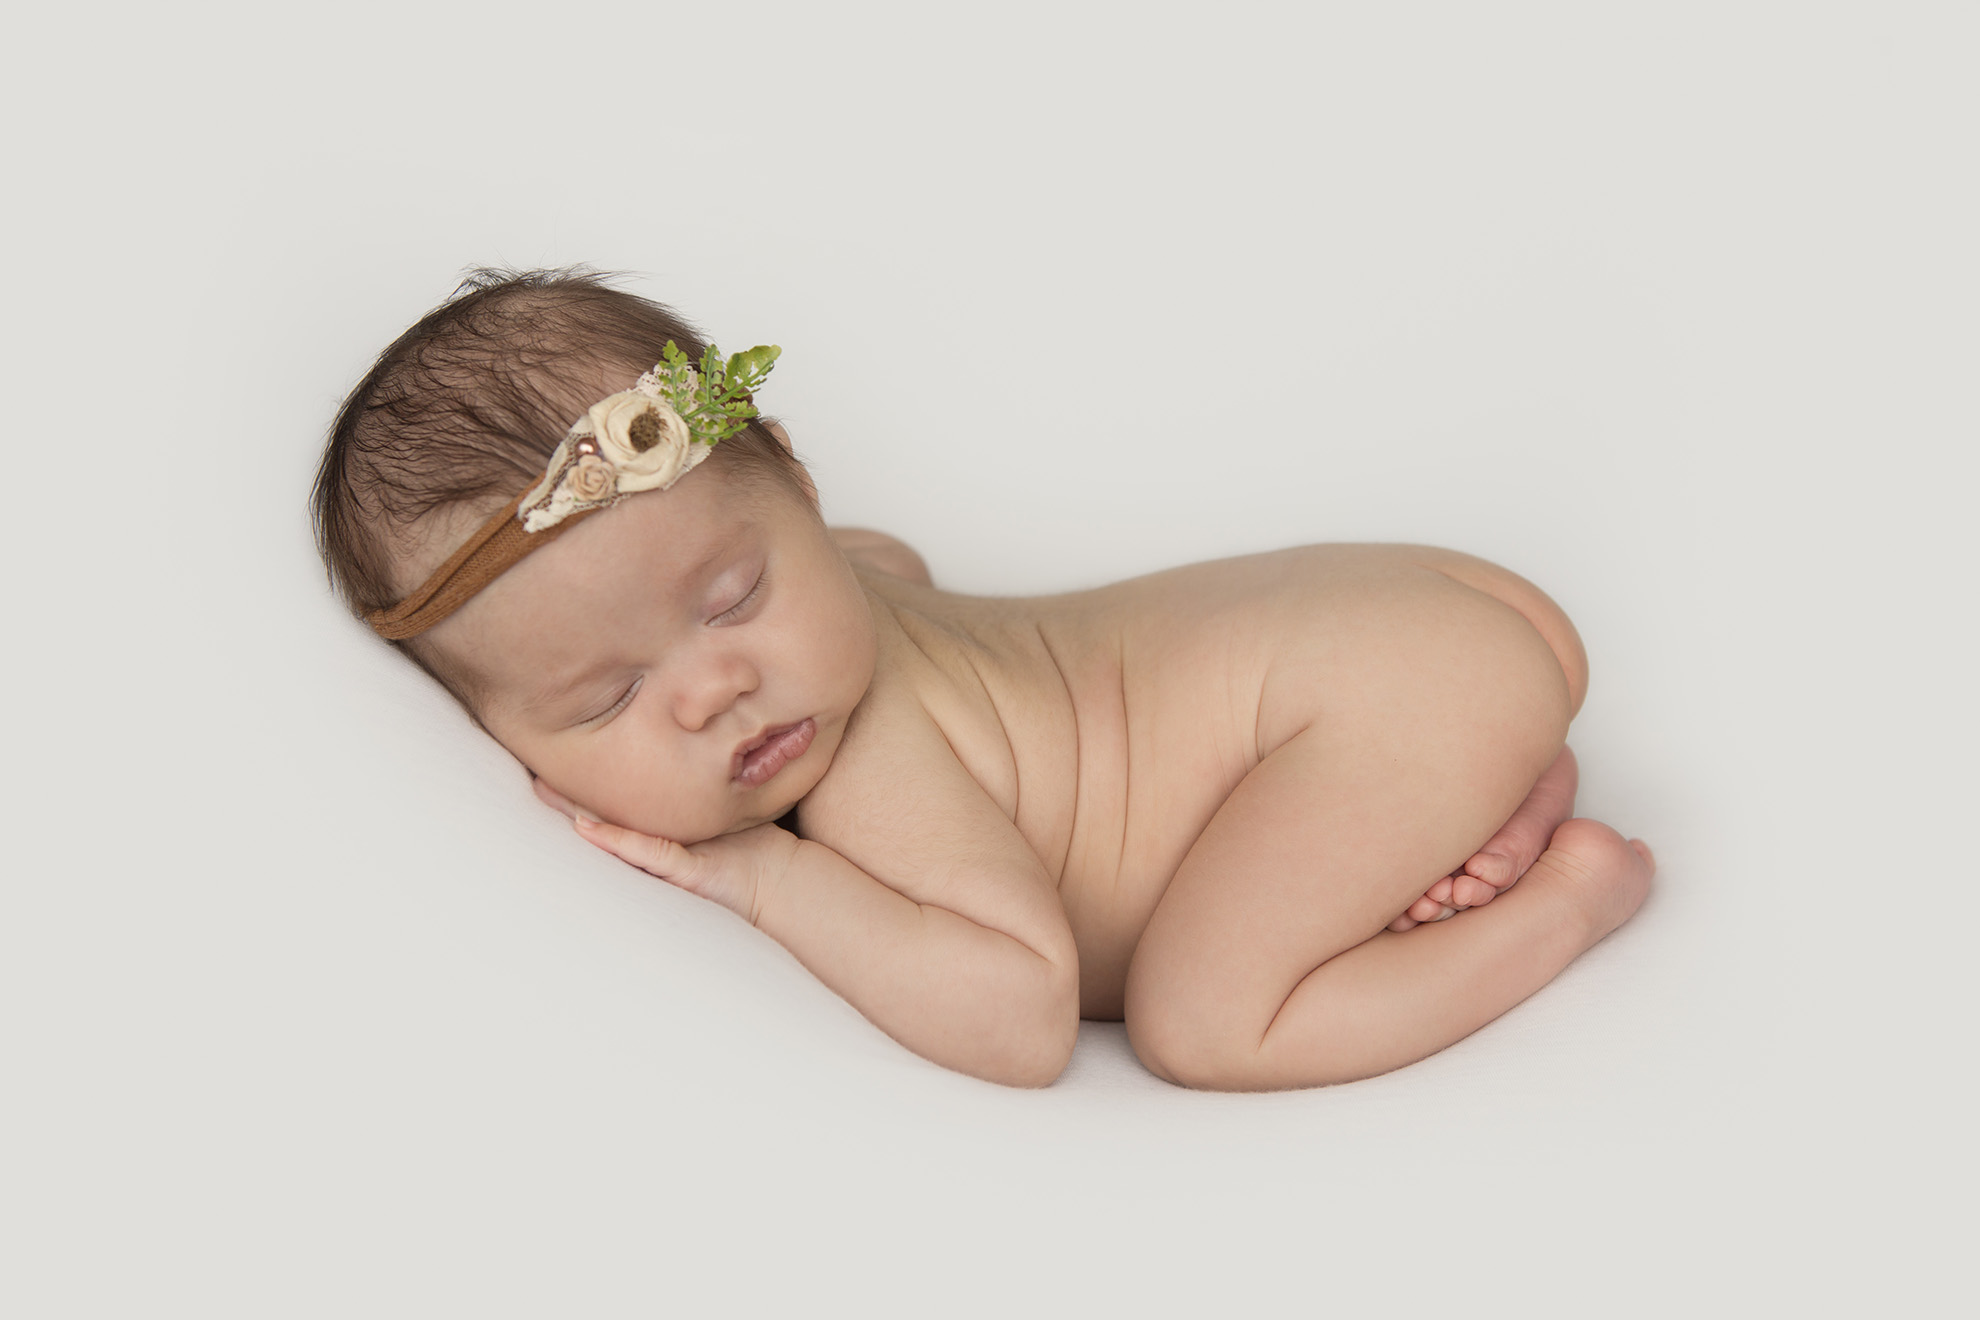 Newborn-baby-photography-naked-baby.jpg